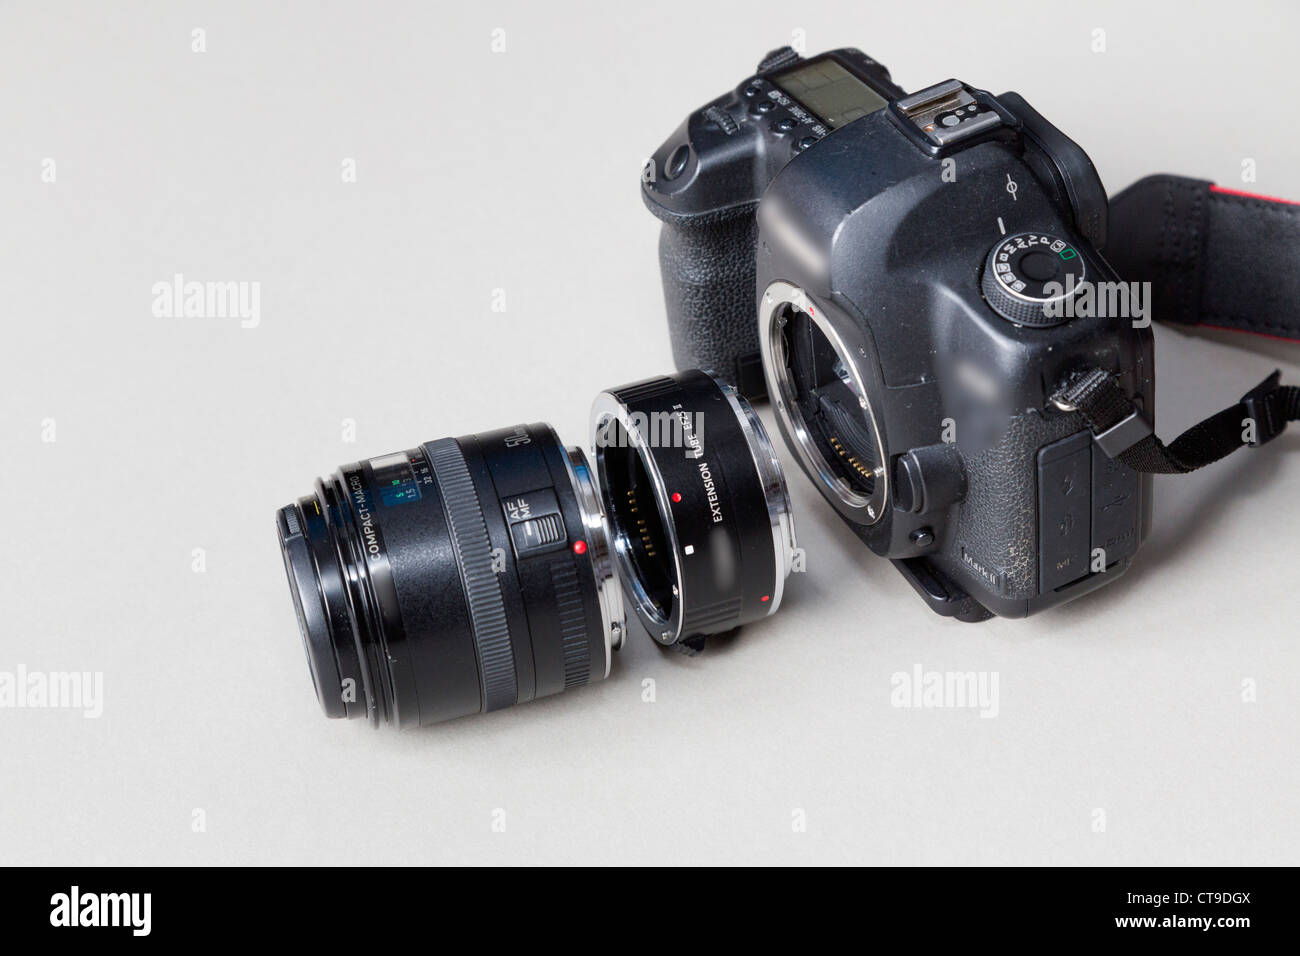 Extension tube and Camera - Stock Image